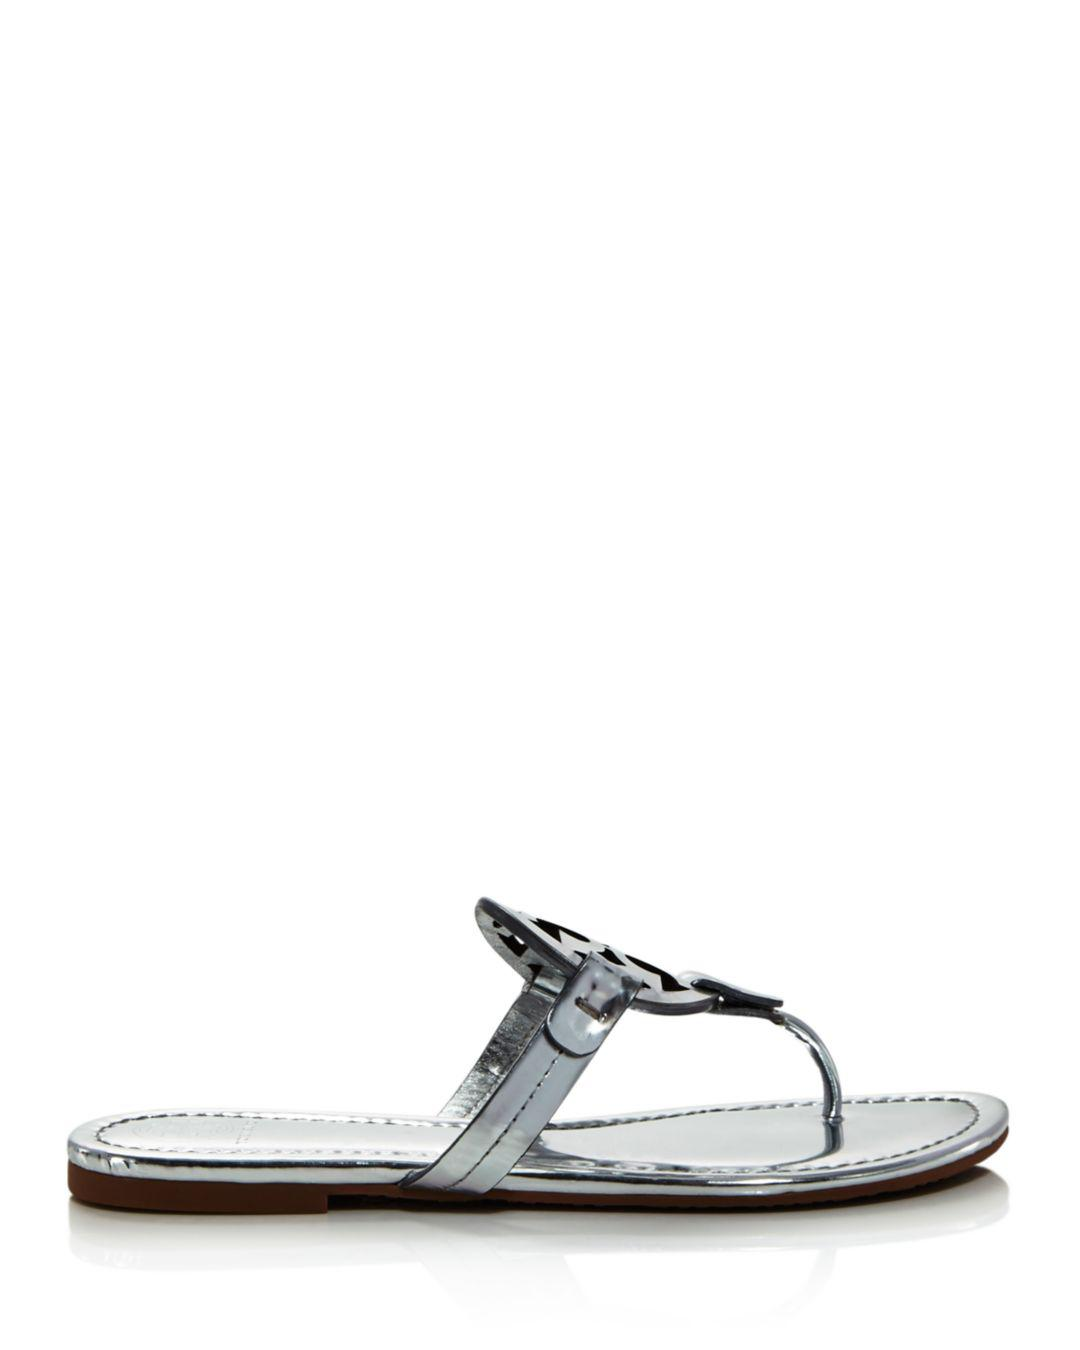 62db2eecb91 Tory Burch Women s Miller Leather Thong Sandals in Metallic - Lyst